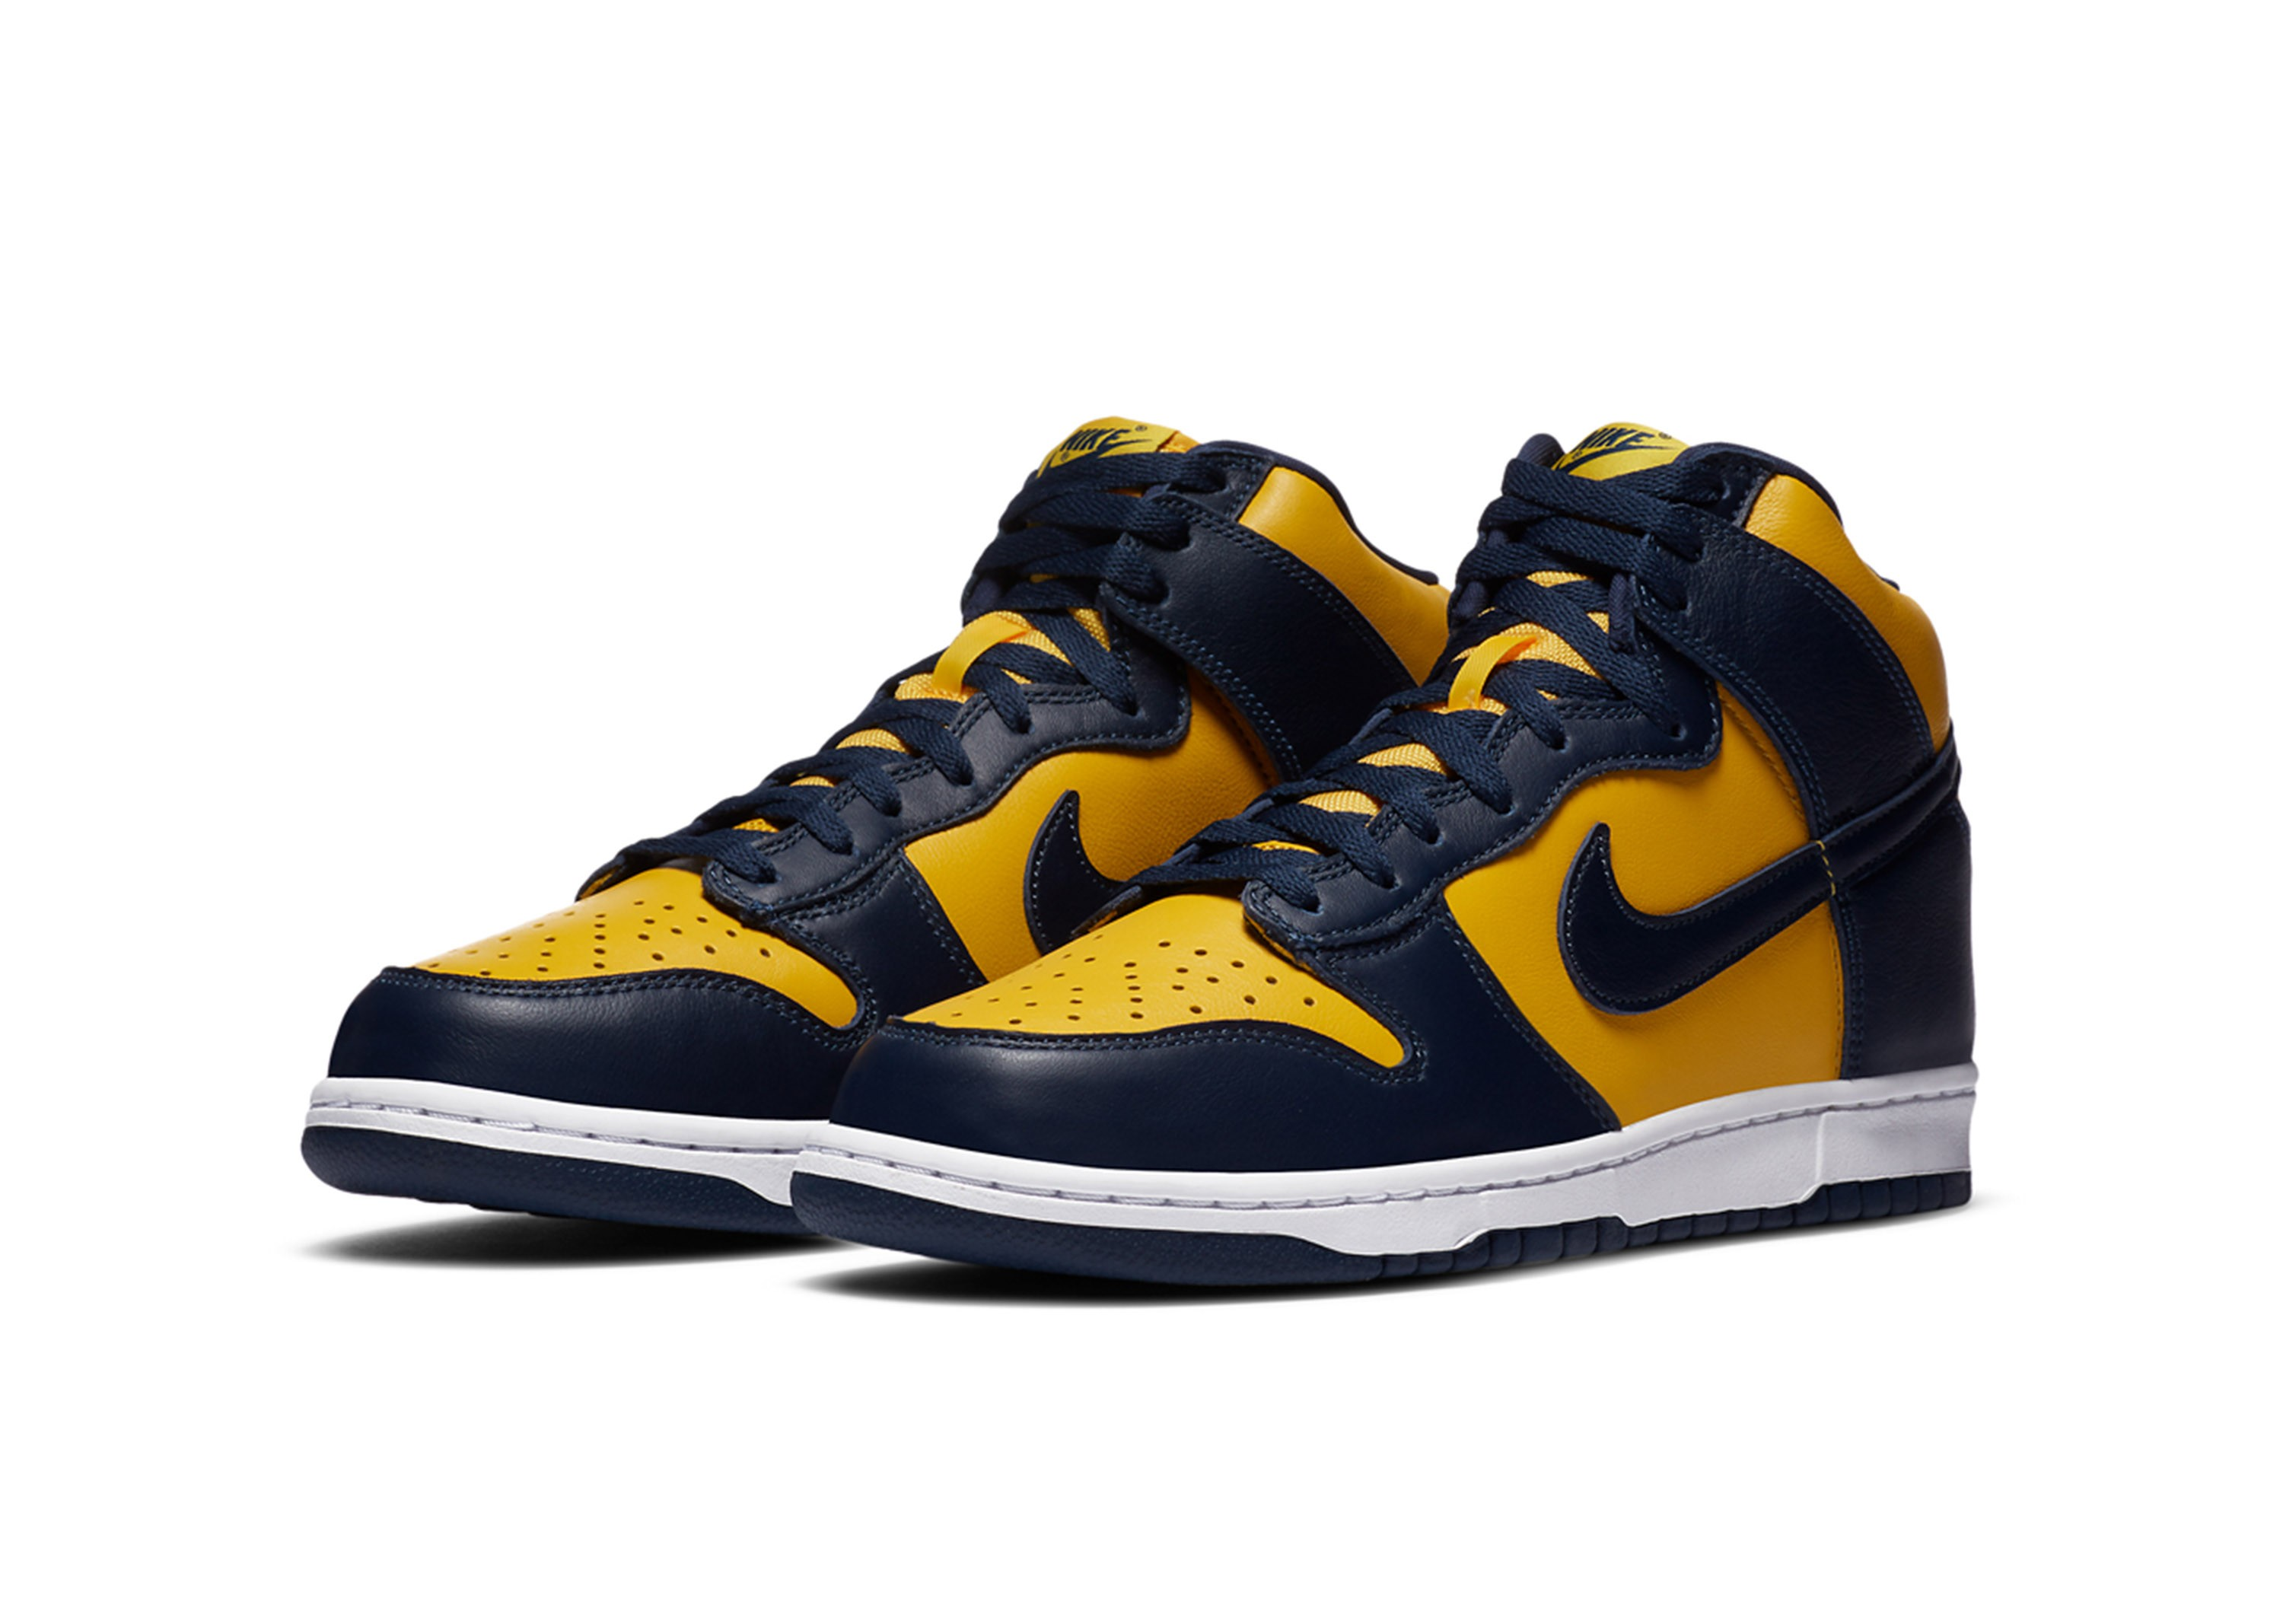 Nike_Dunk_High_Michigan_Navy_Maize_0002_nike-dunk-high-michigan-cz8149-700-official-release-date-info-3